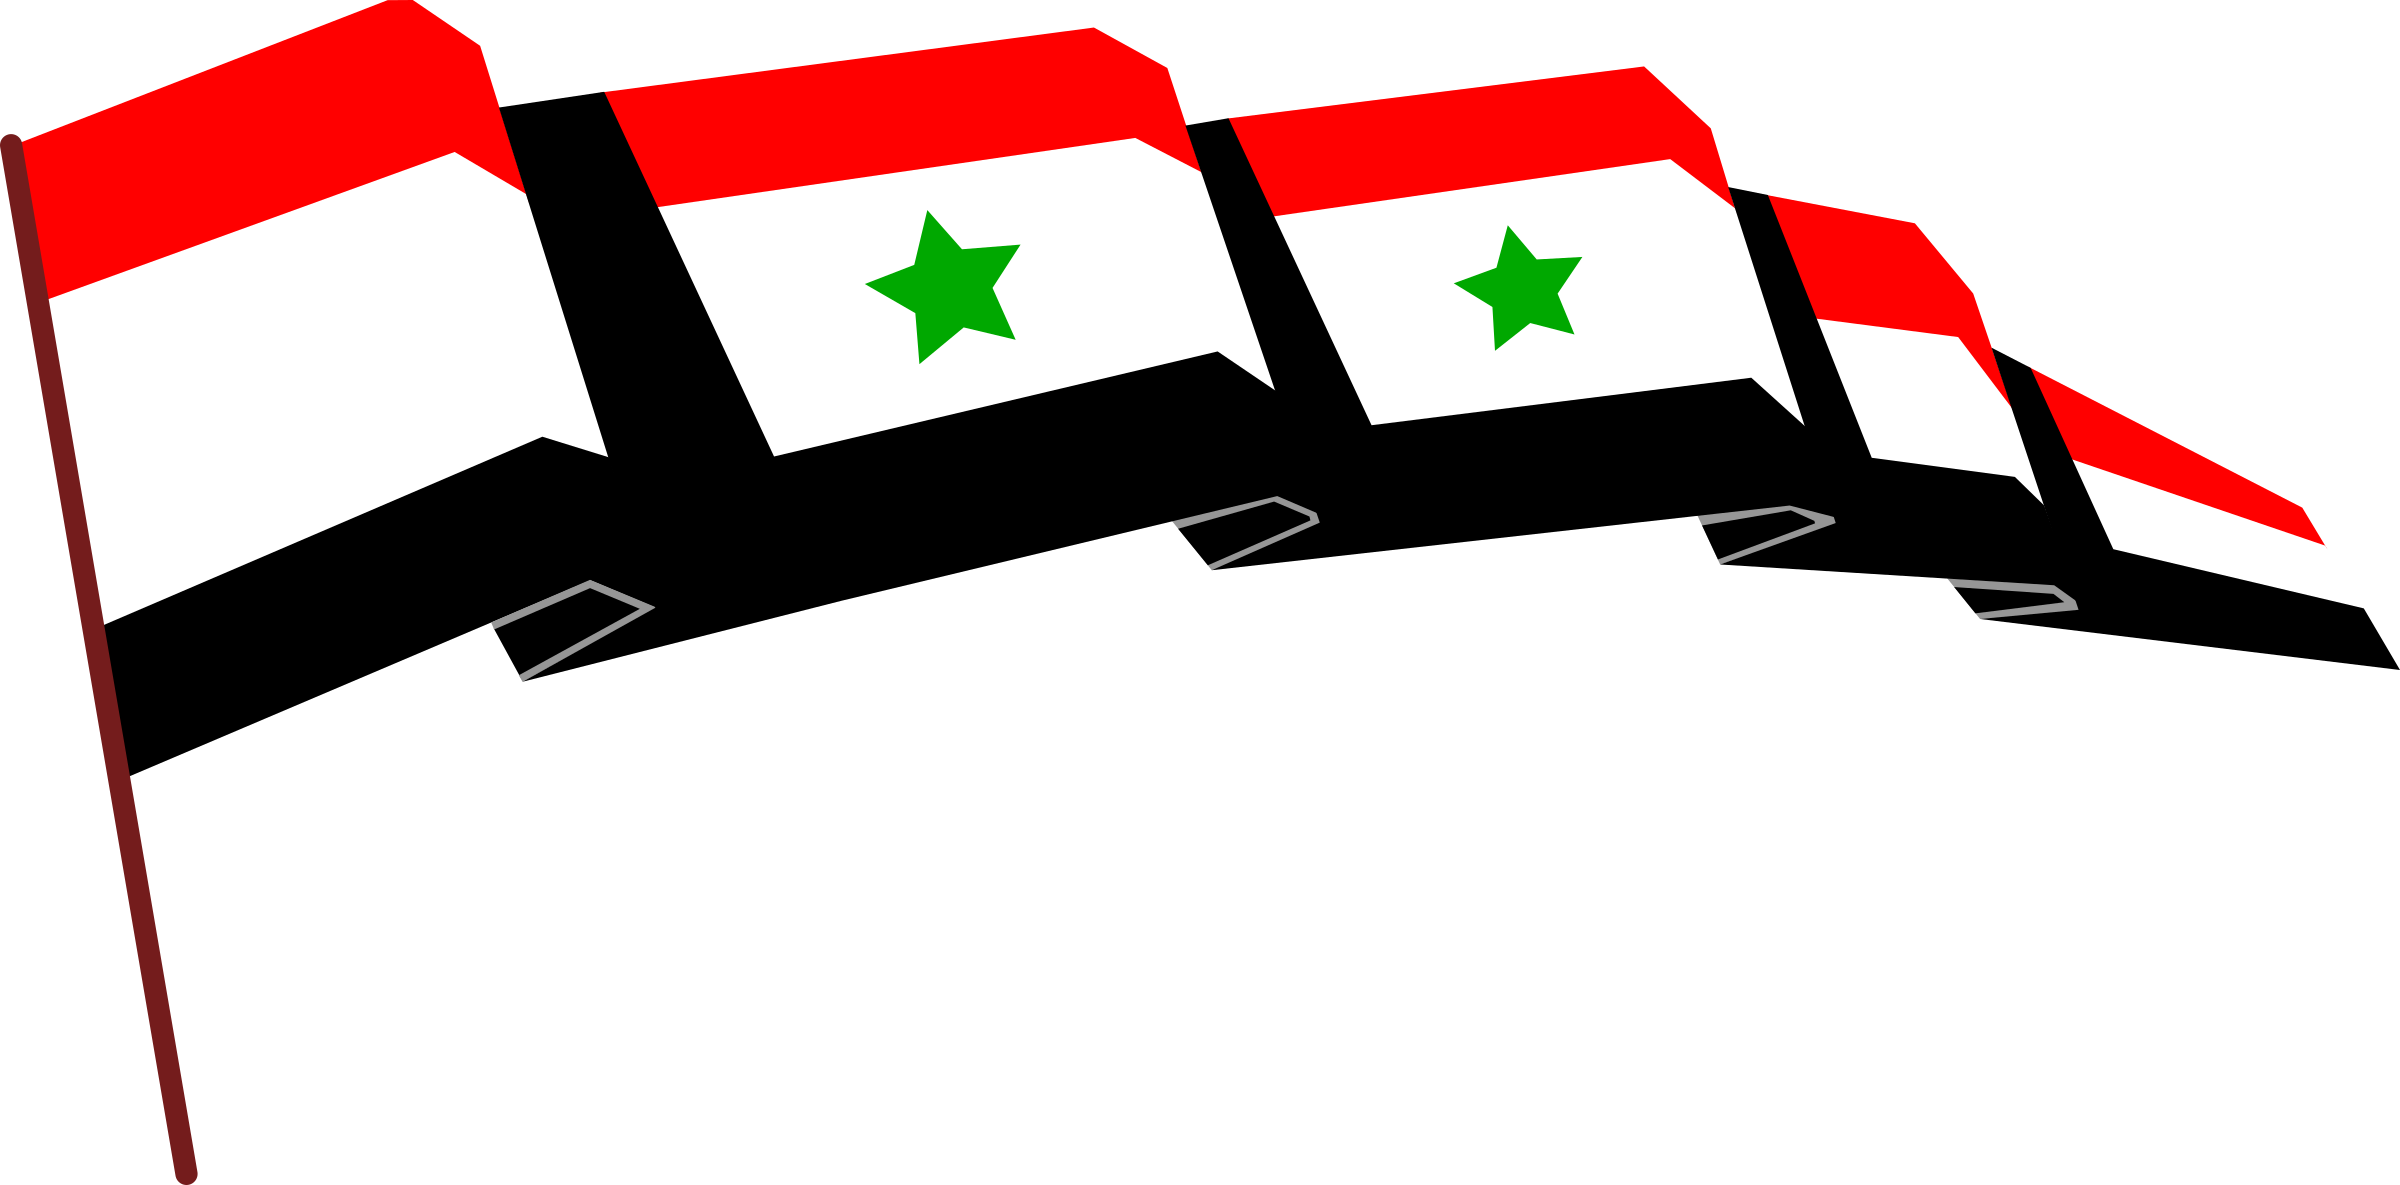 Syrian flag by clagnar